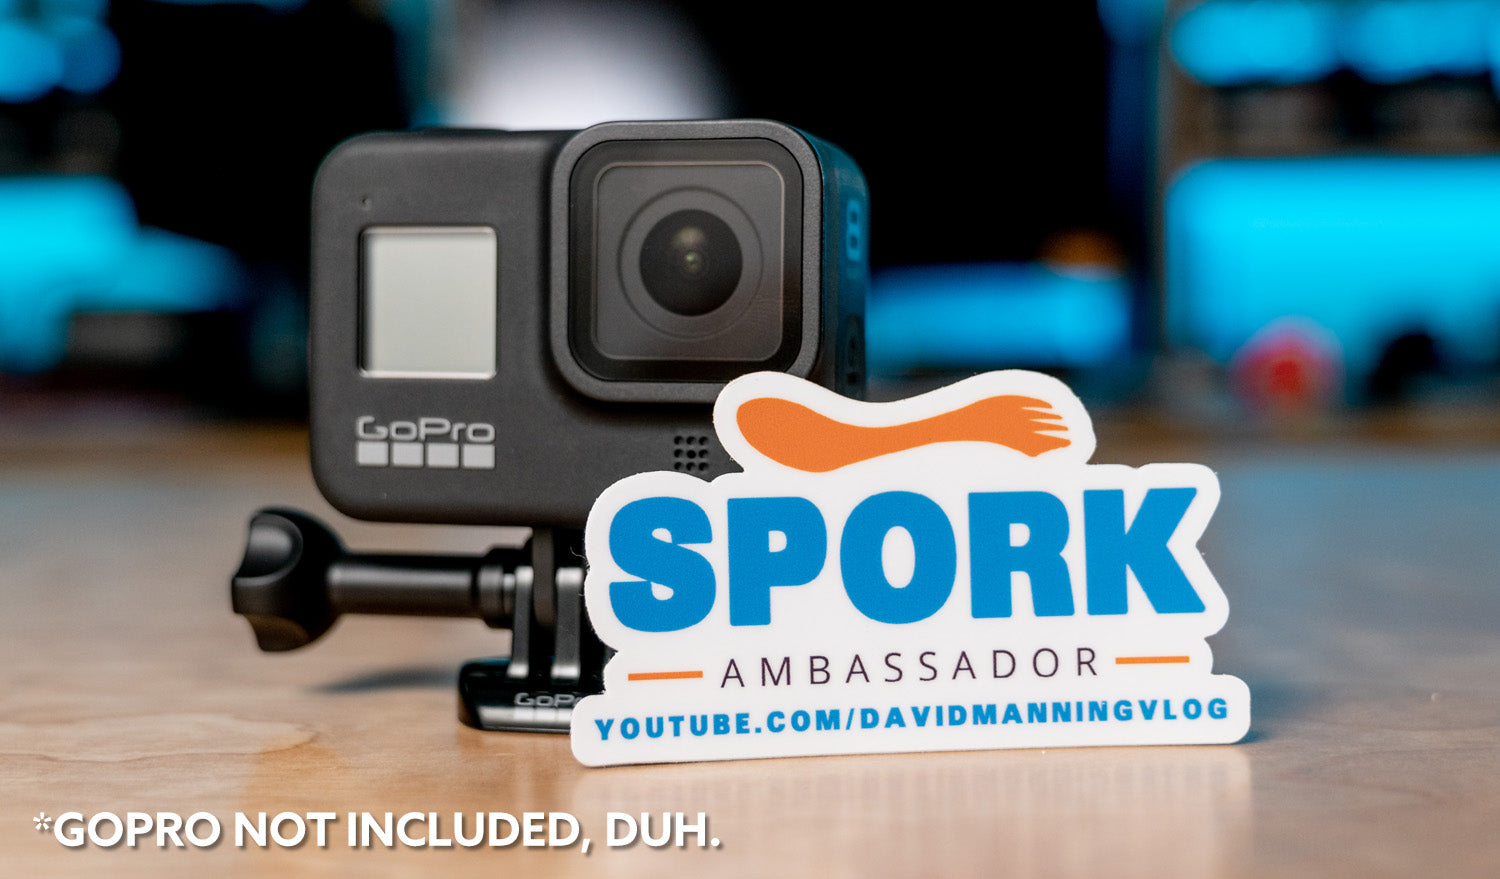 Spork Ambassador Sticker - If you know, you know ;)